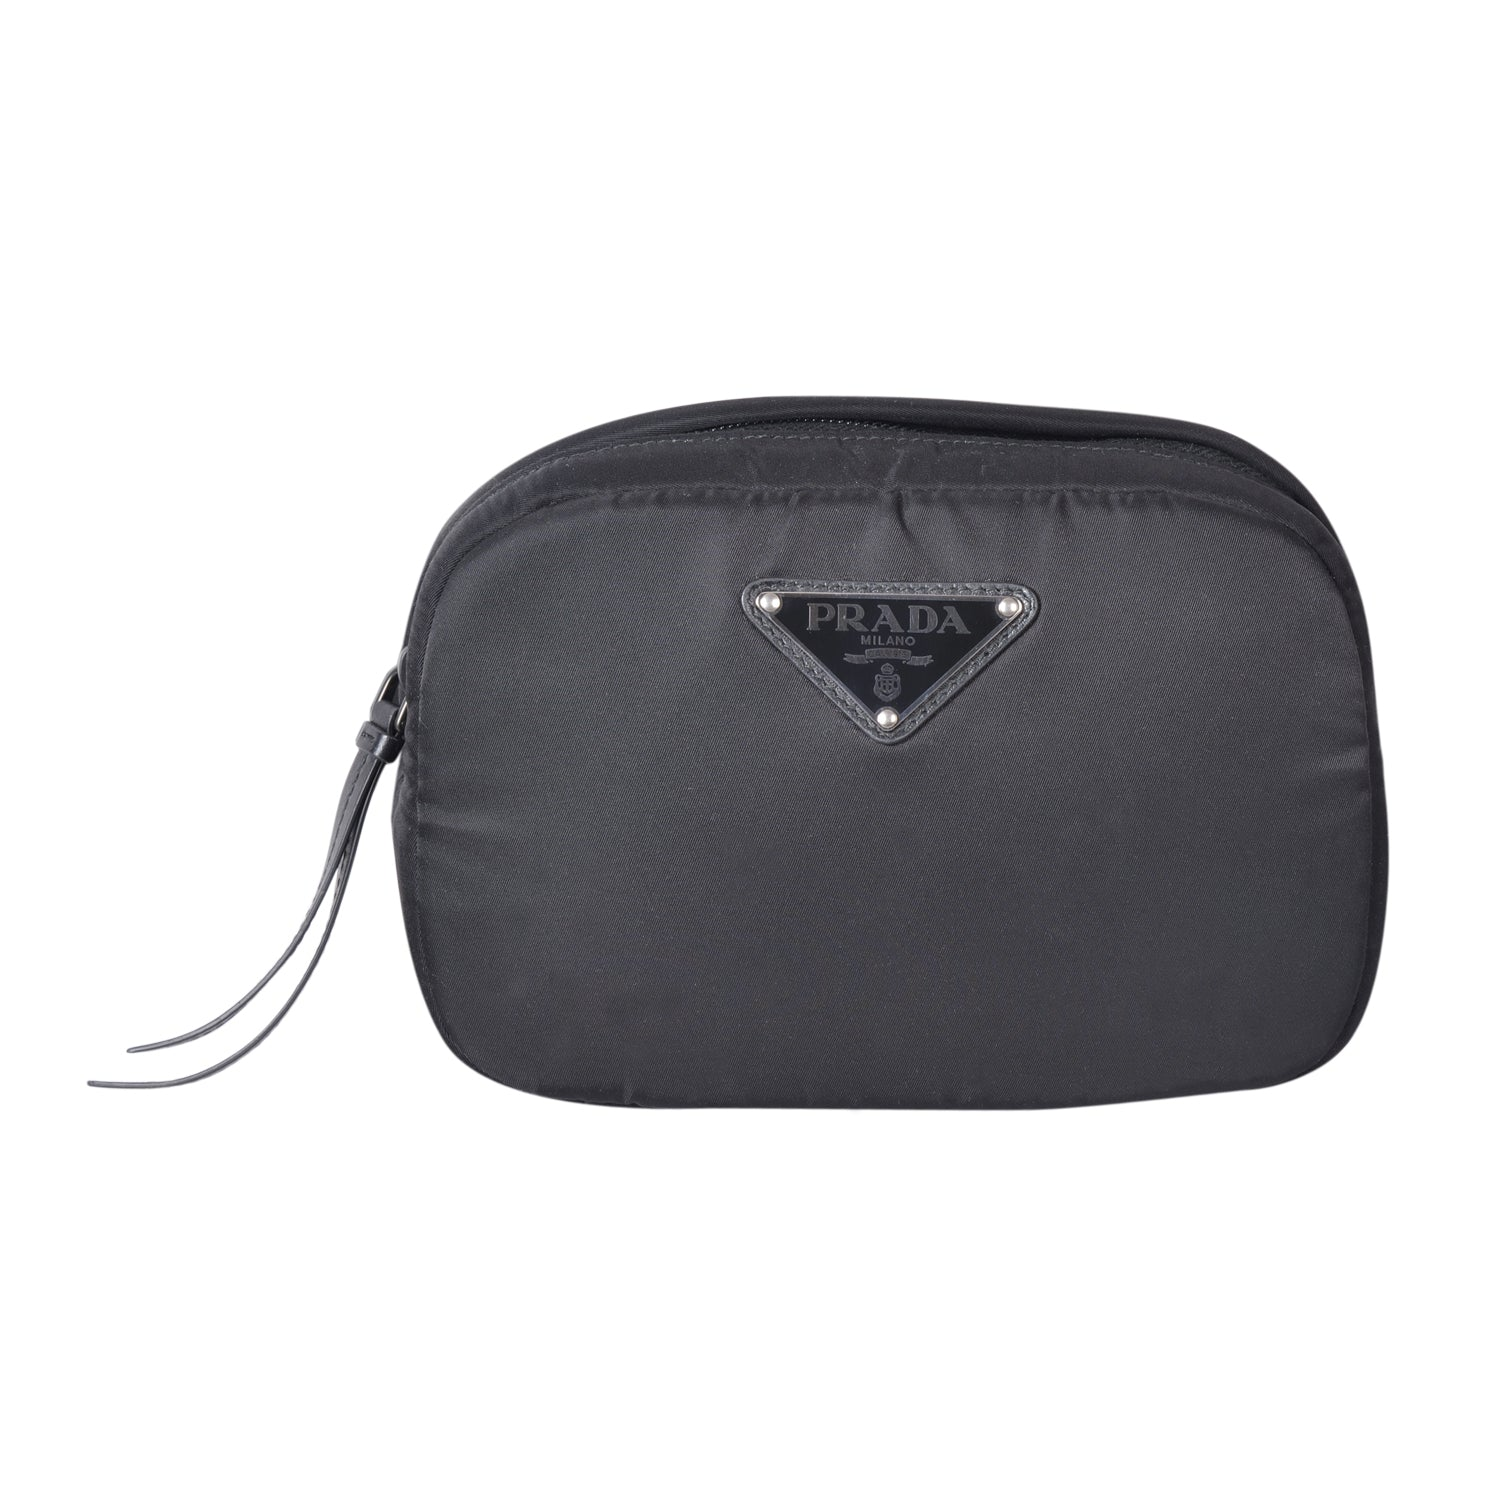 Prada belt bag in black polyamide  | Shop Luxury Handbag Online